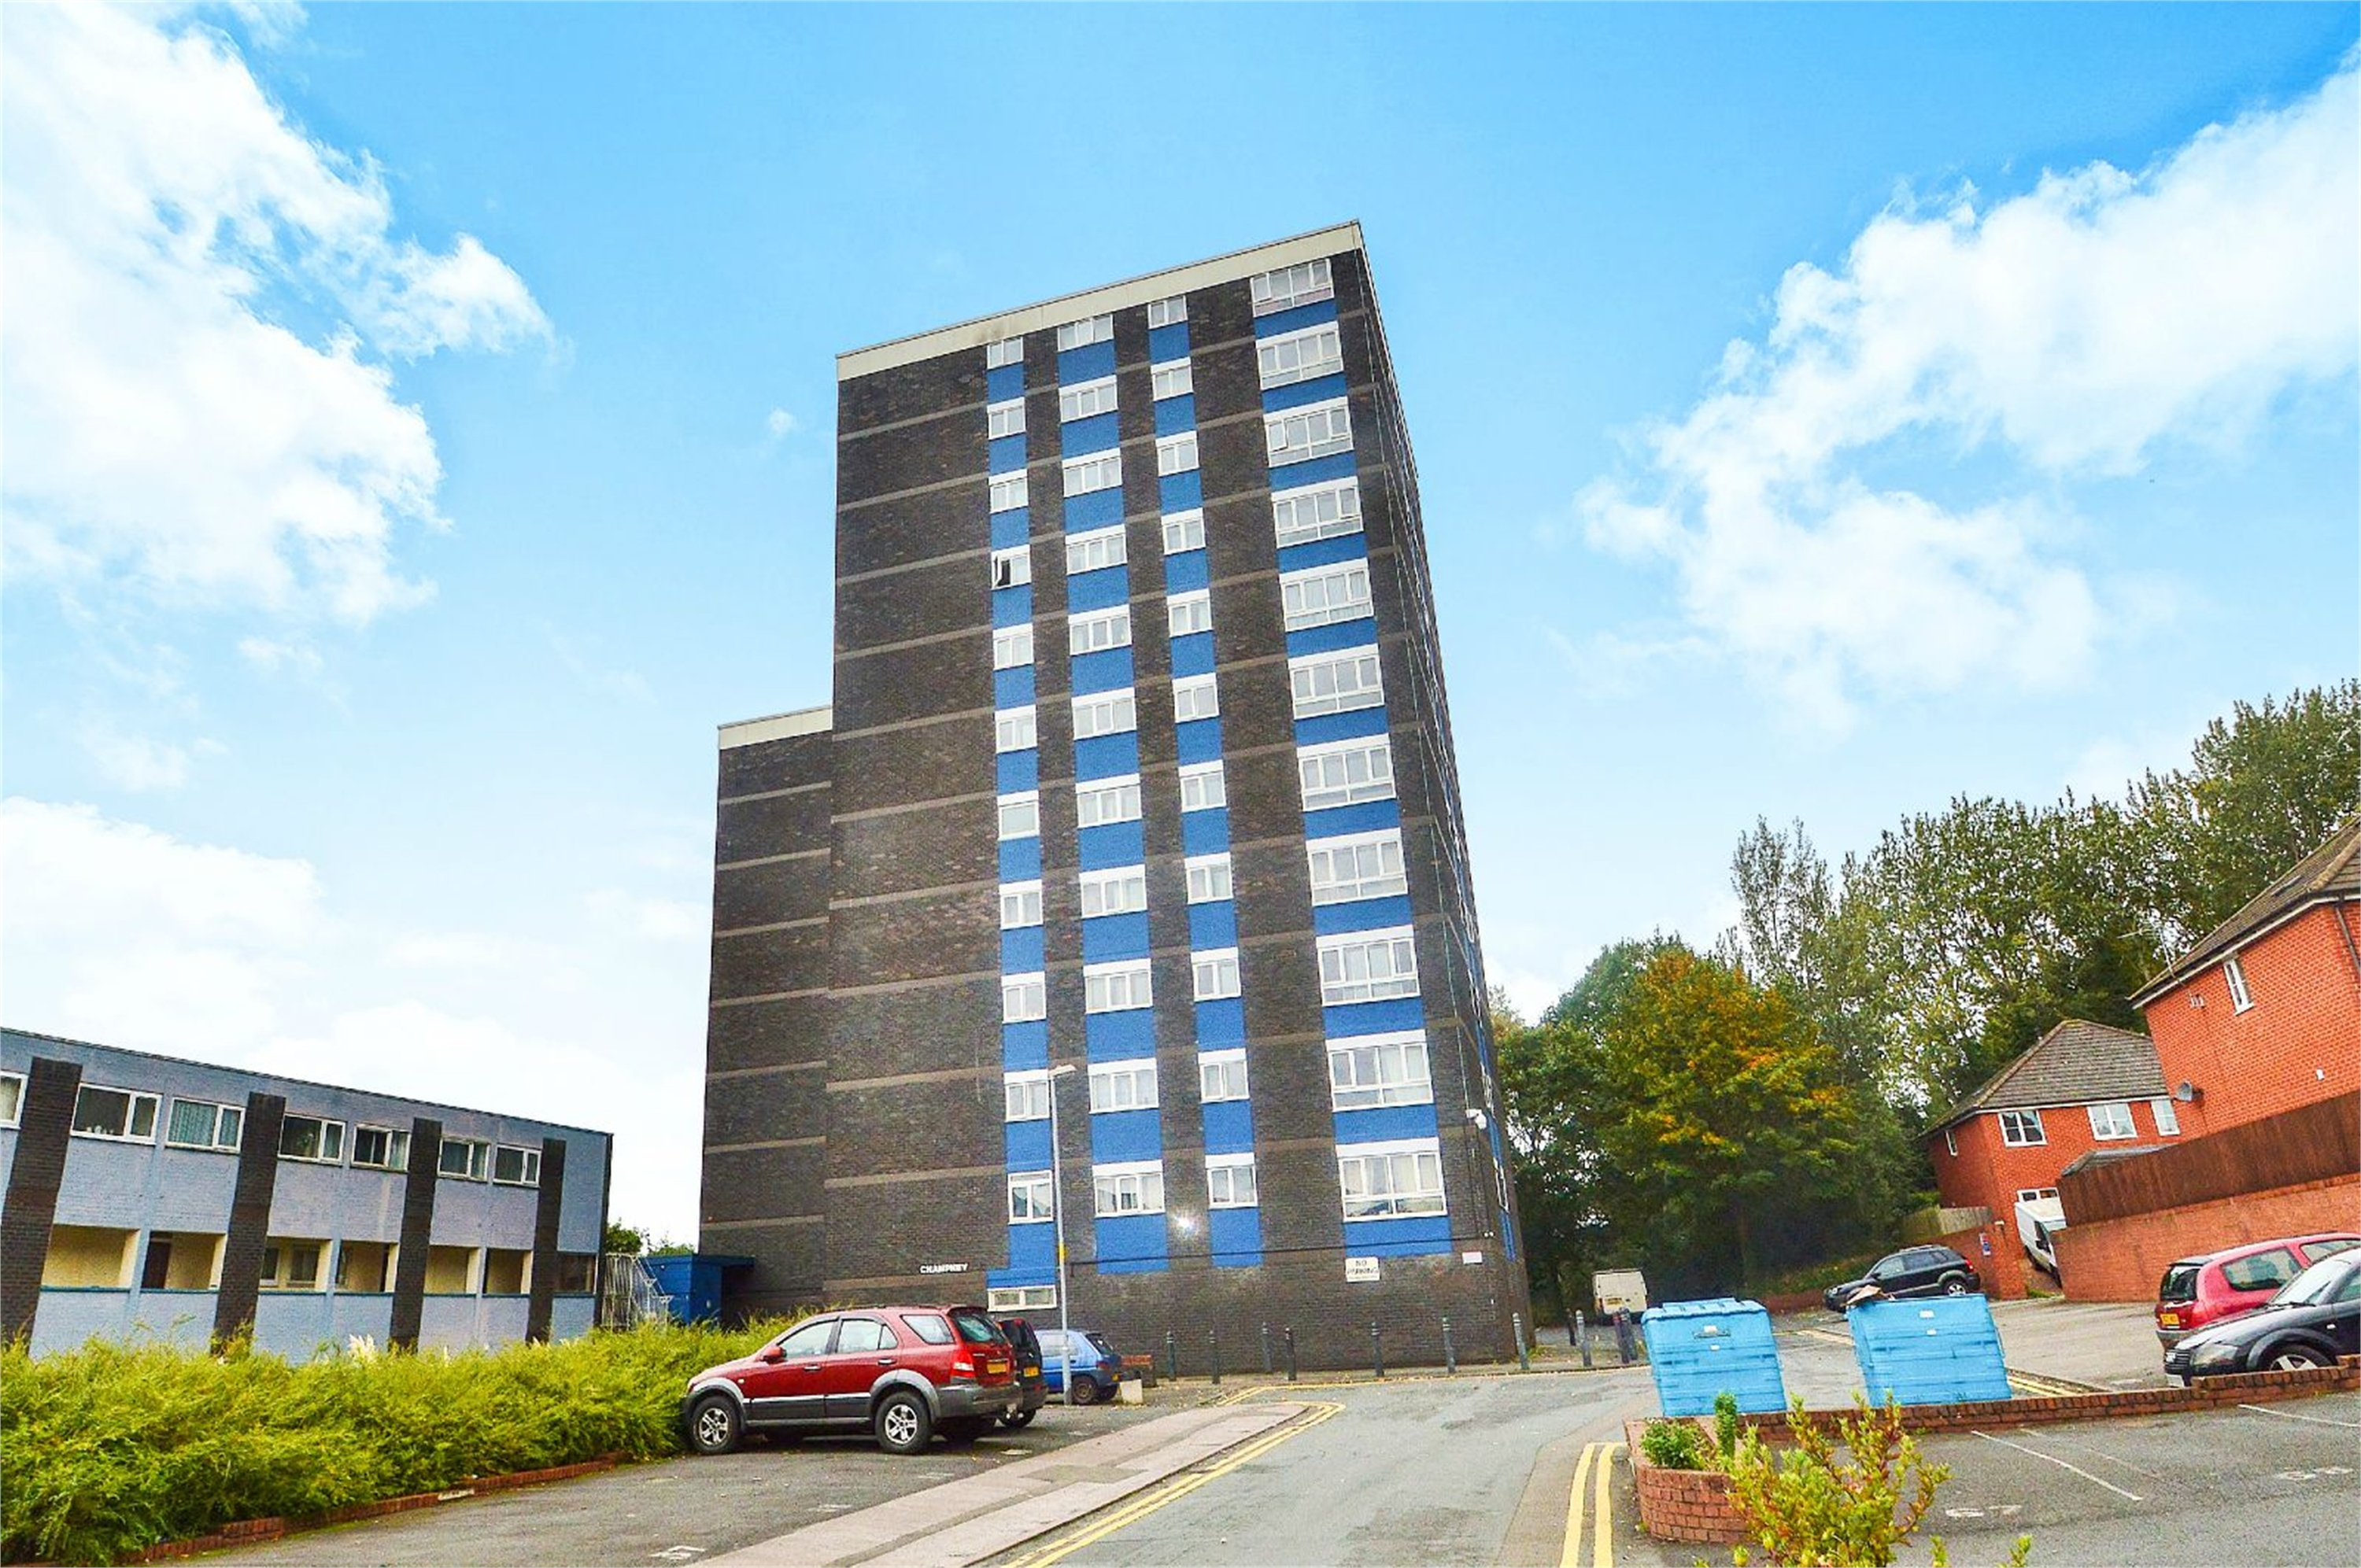 2 Bedrooms Flat for sale in Flat 14 Champney Court, St Cecilia Close, Kidderminster, Worcestershire, DY10